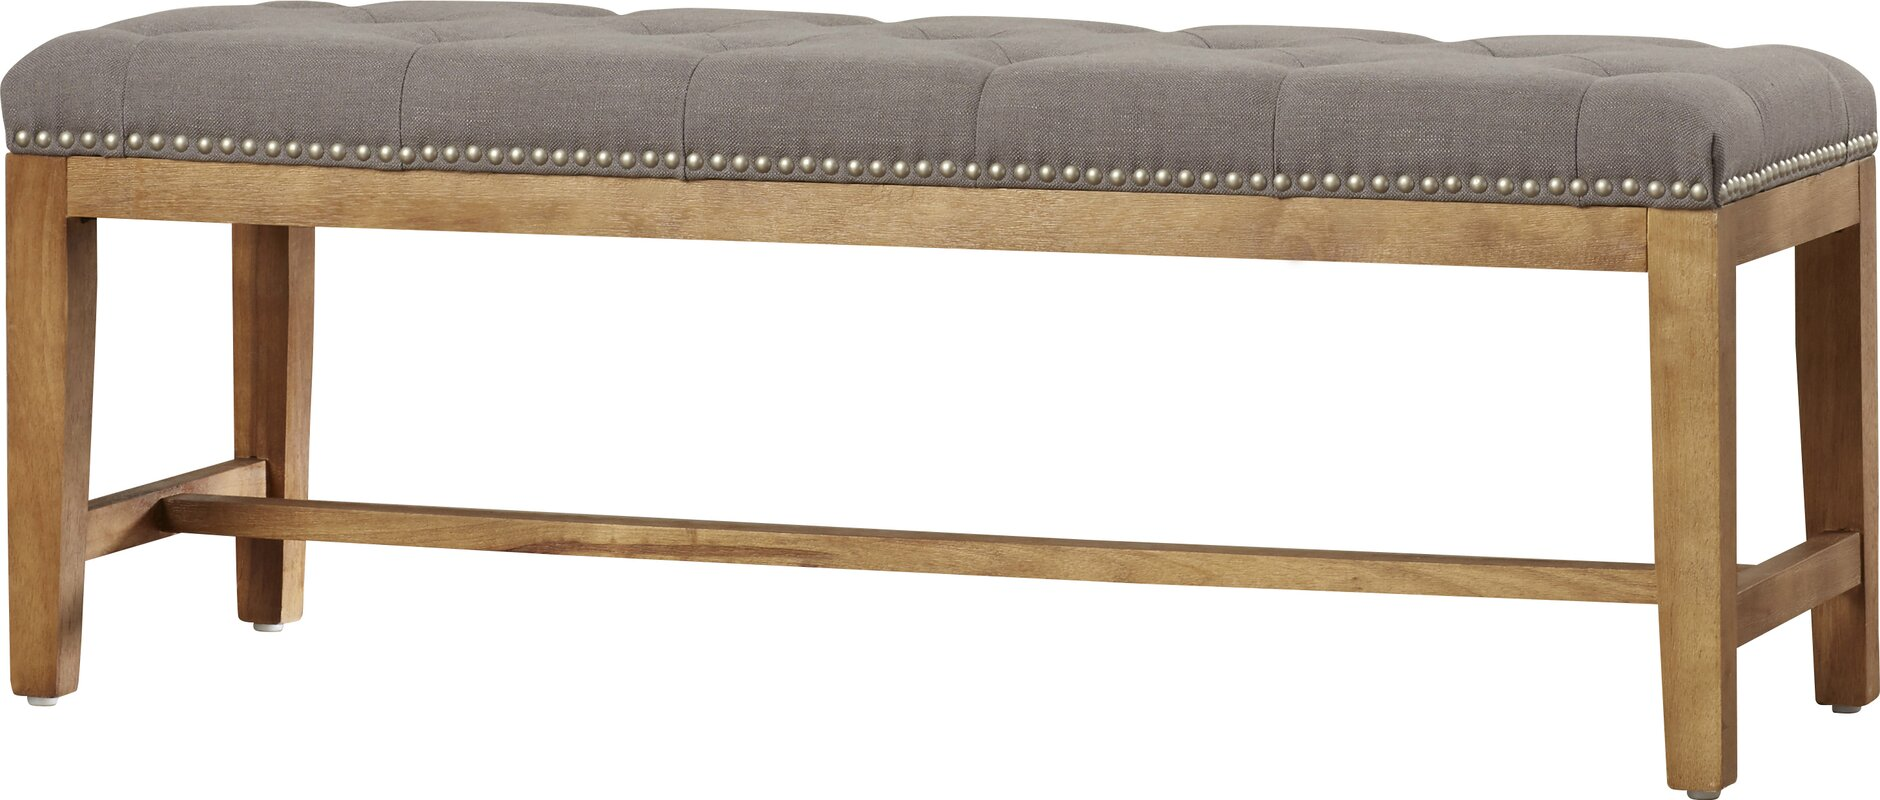 Contemporary bedroom bench - Grunewald Upholstered Bench